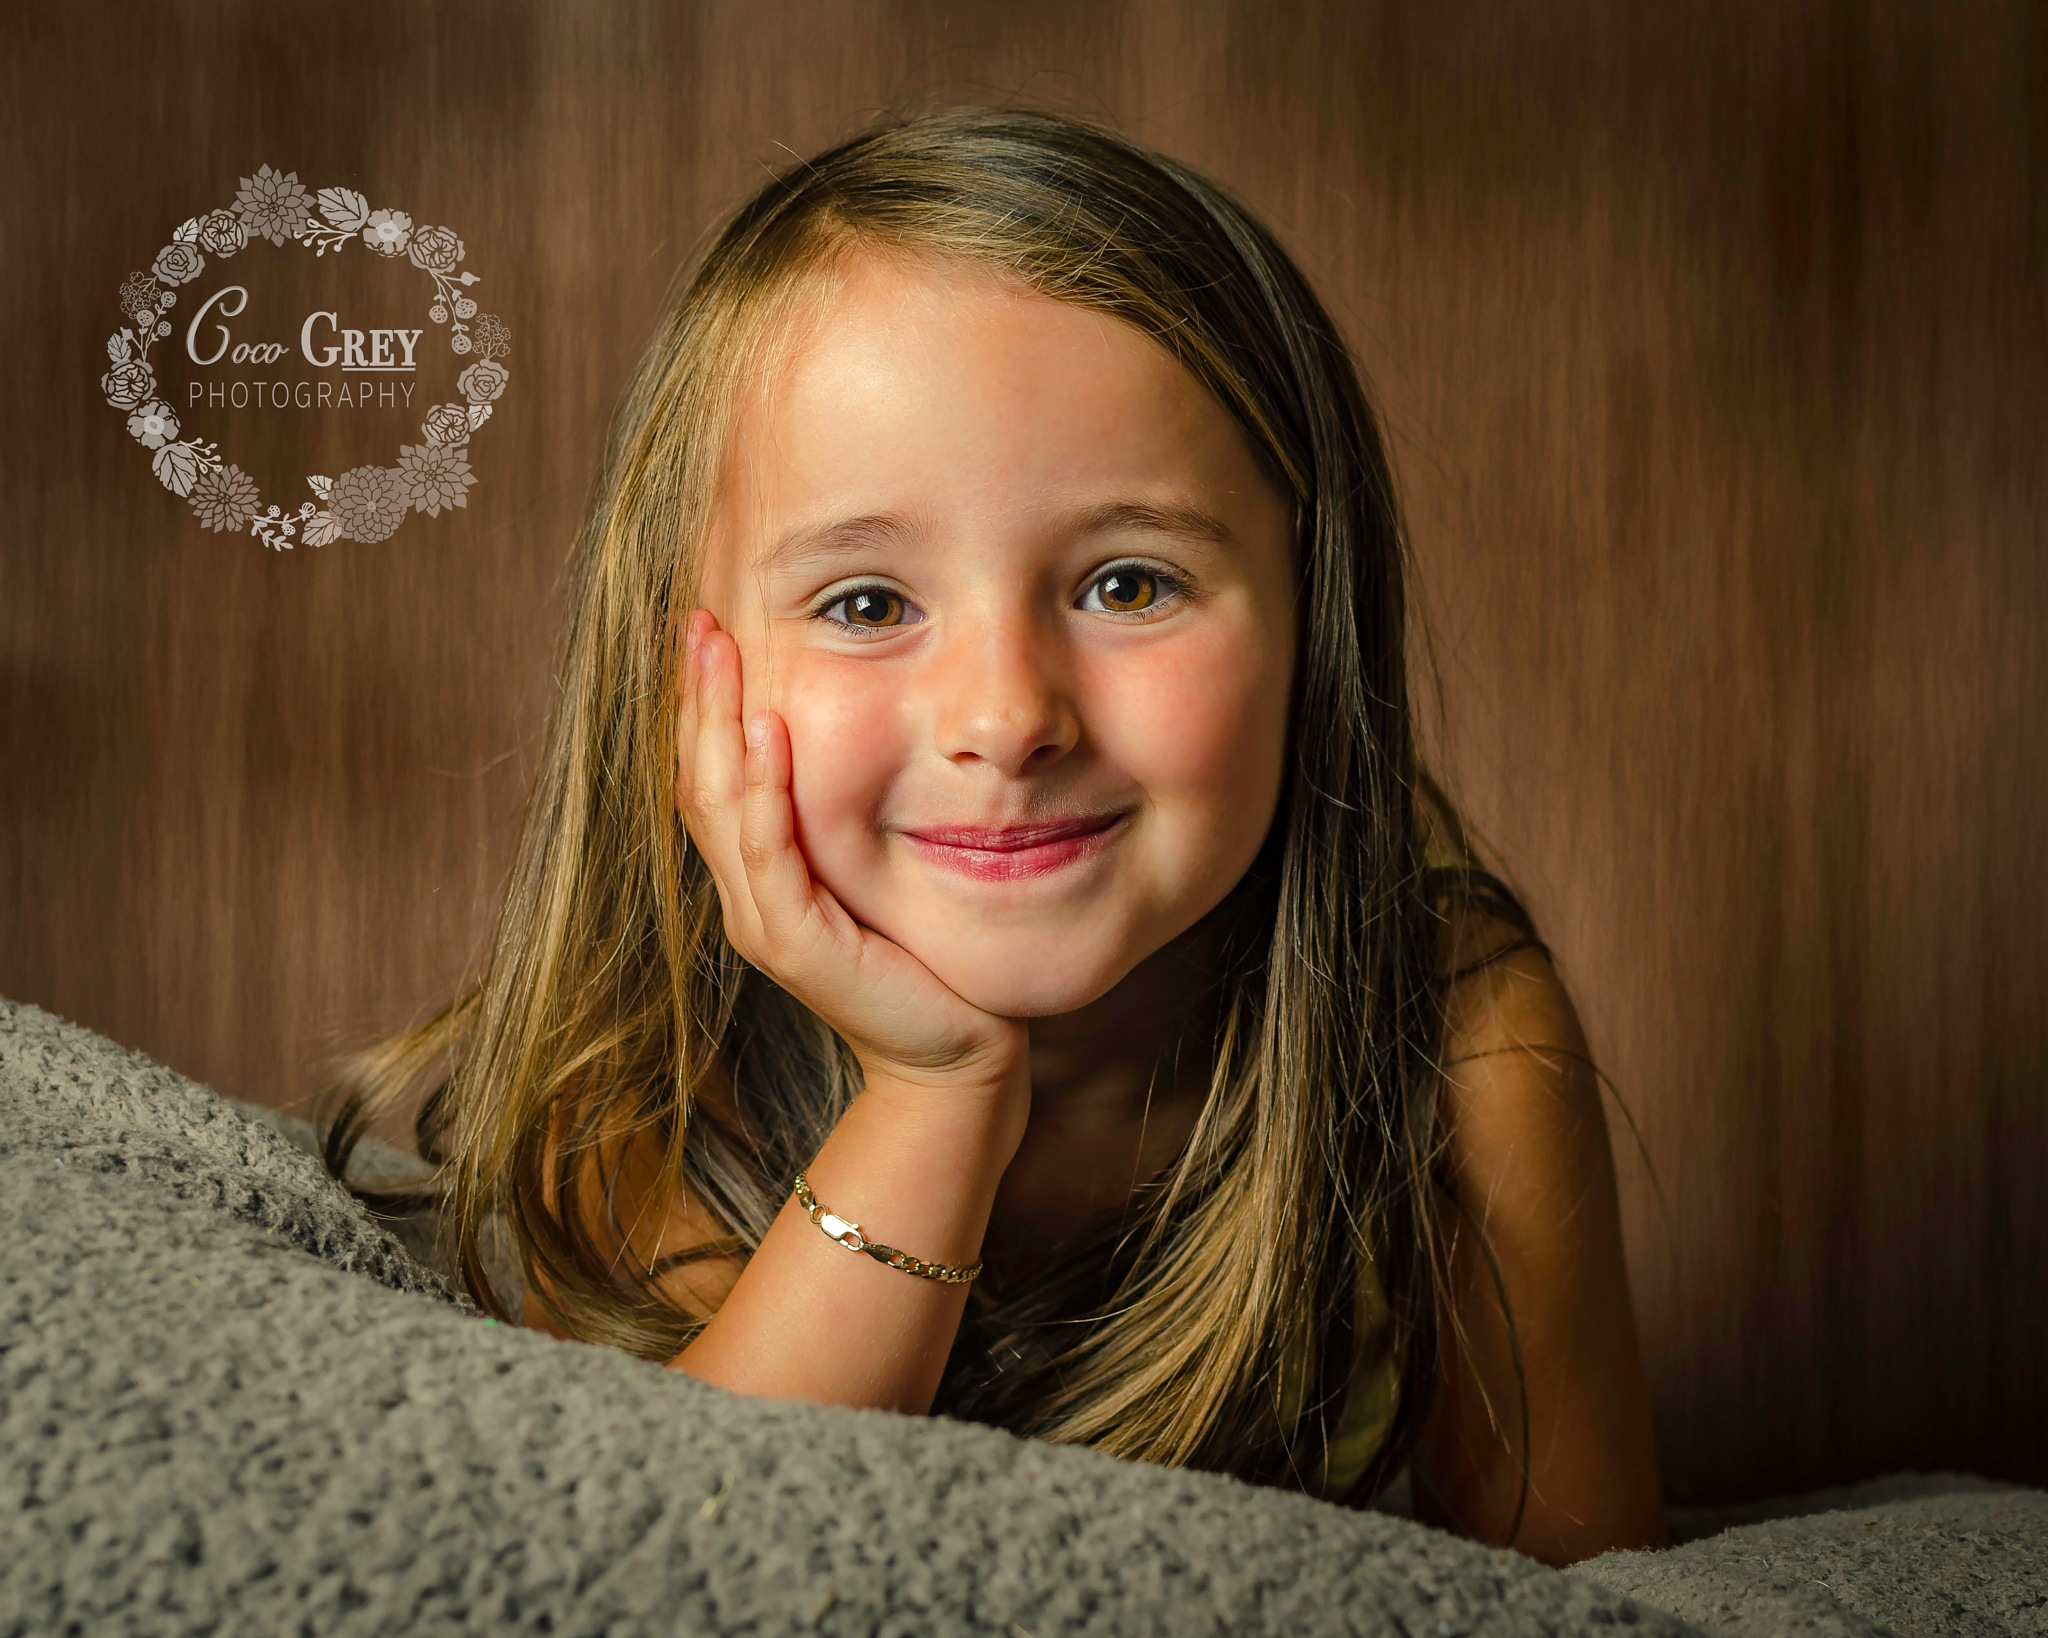 Brown eyed Demi by Coco Grey Photography